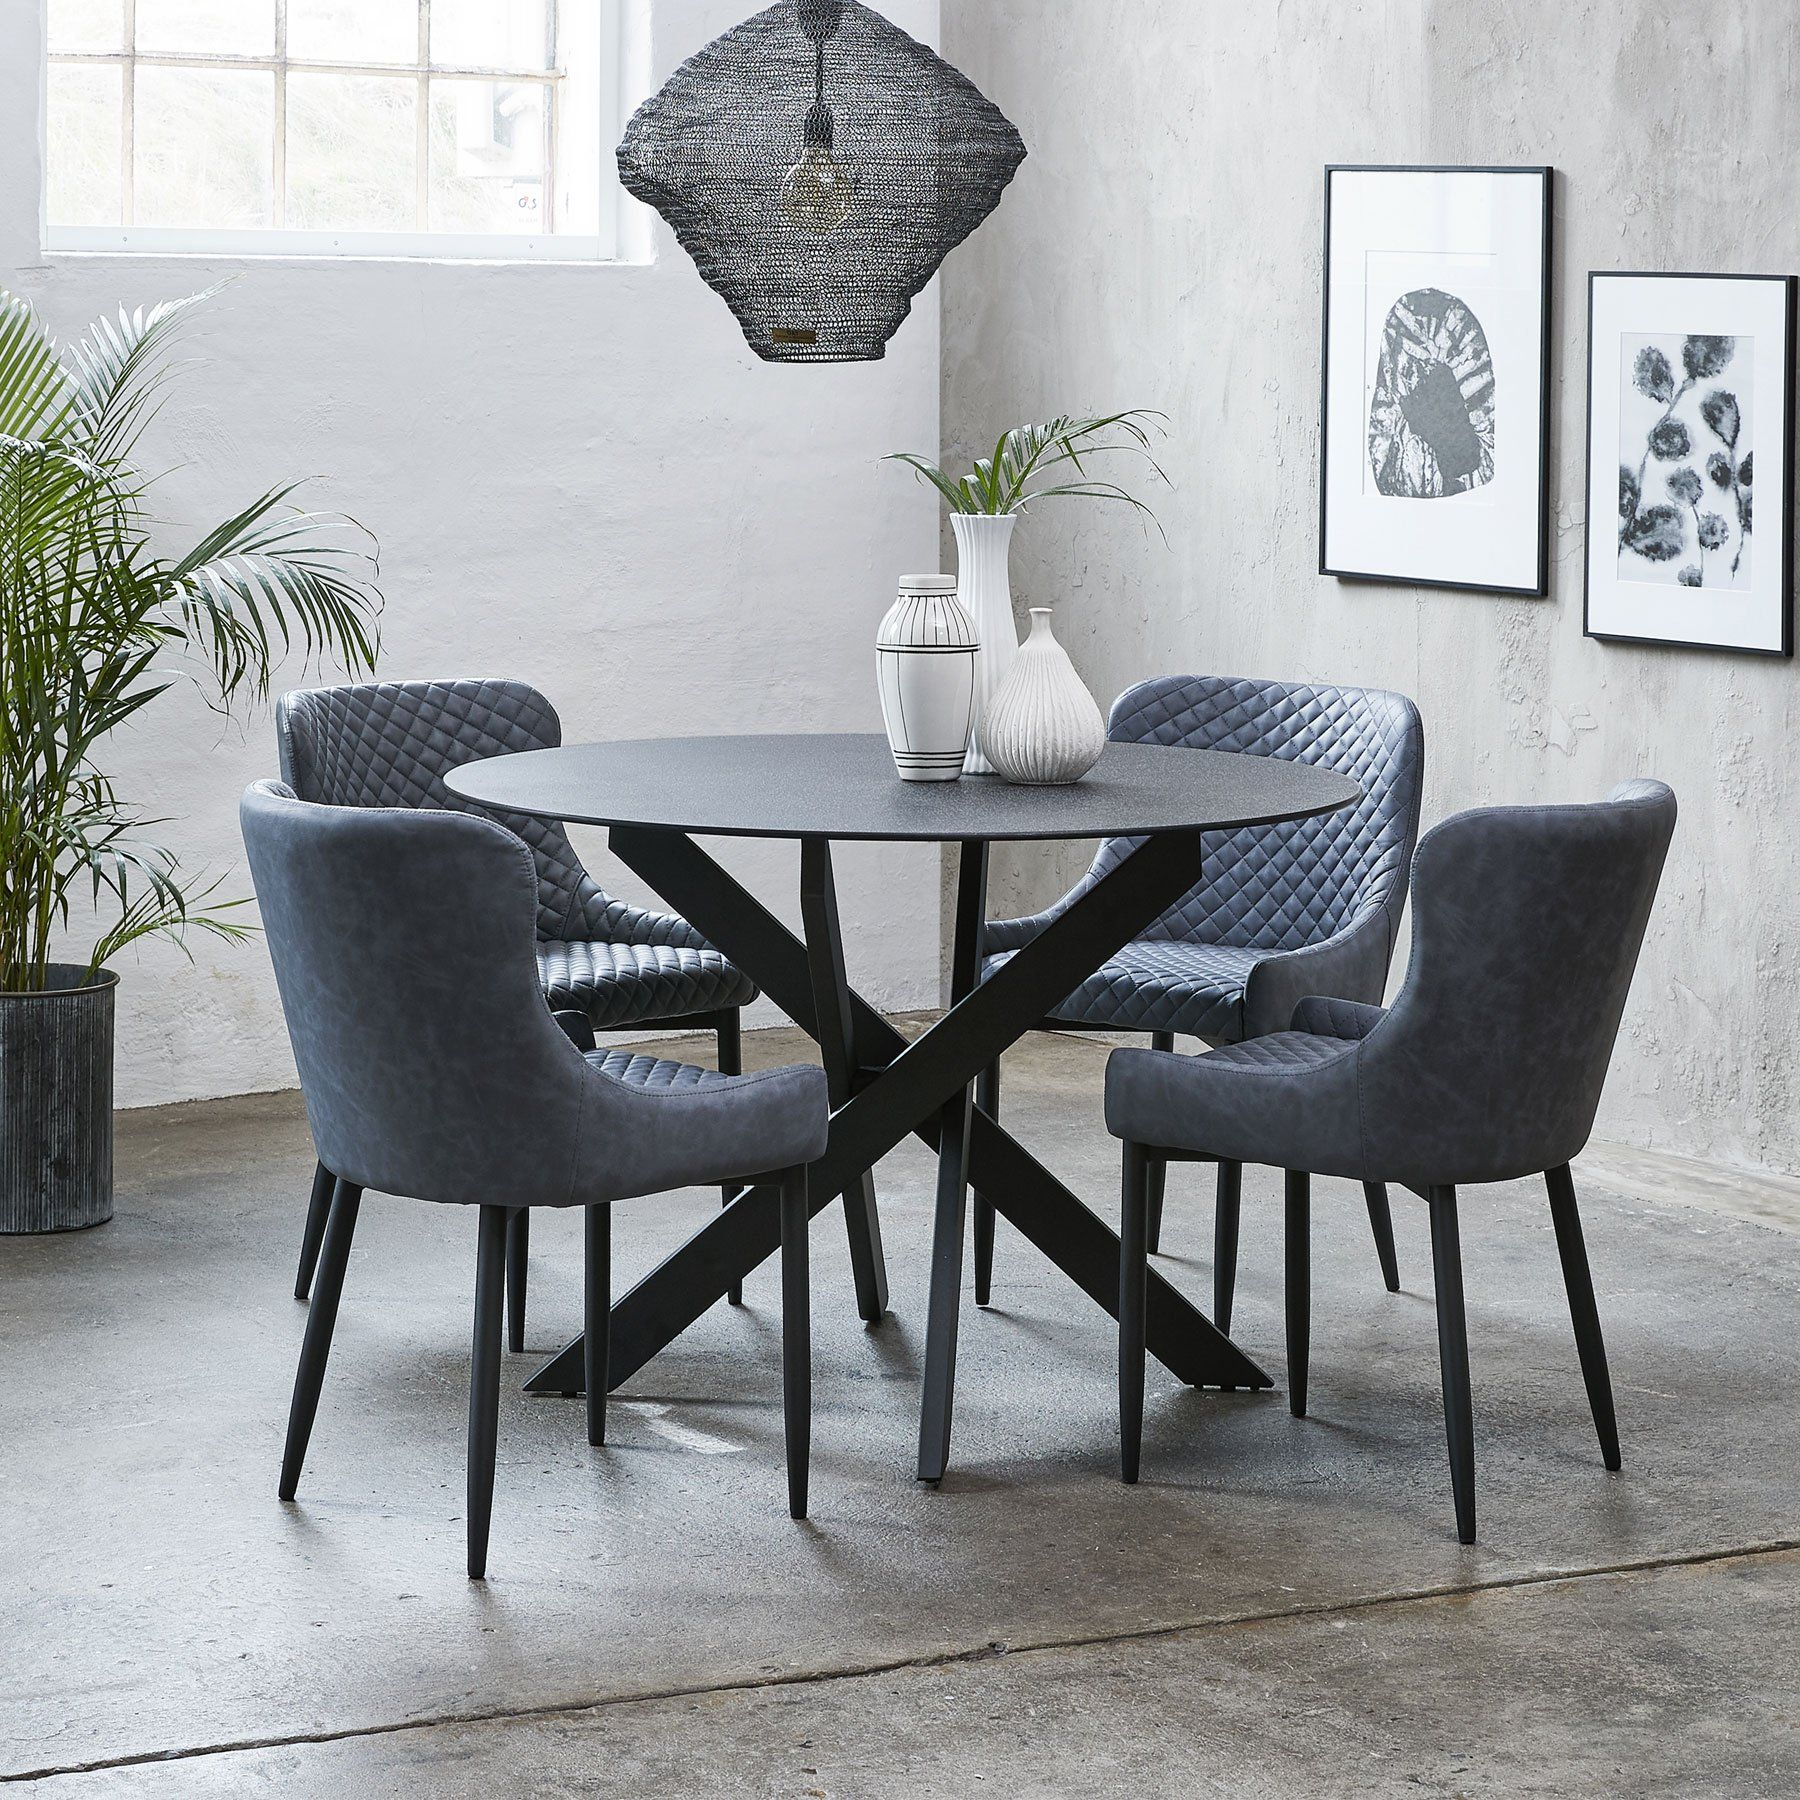 Remi 120cm Round Dining Table 4 Dark Grey Toby Chairs Round Dining Room Table Round Dining Room Grey Dining Room Chairs